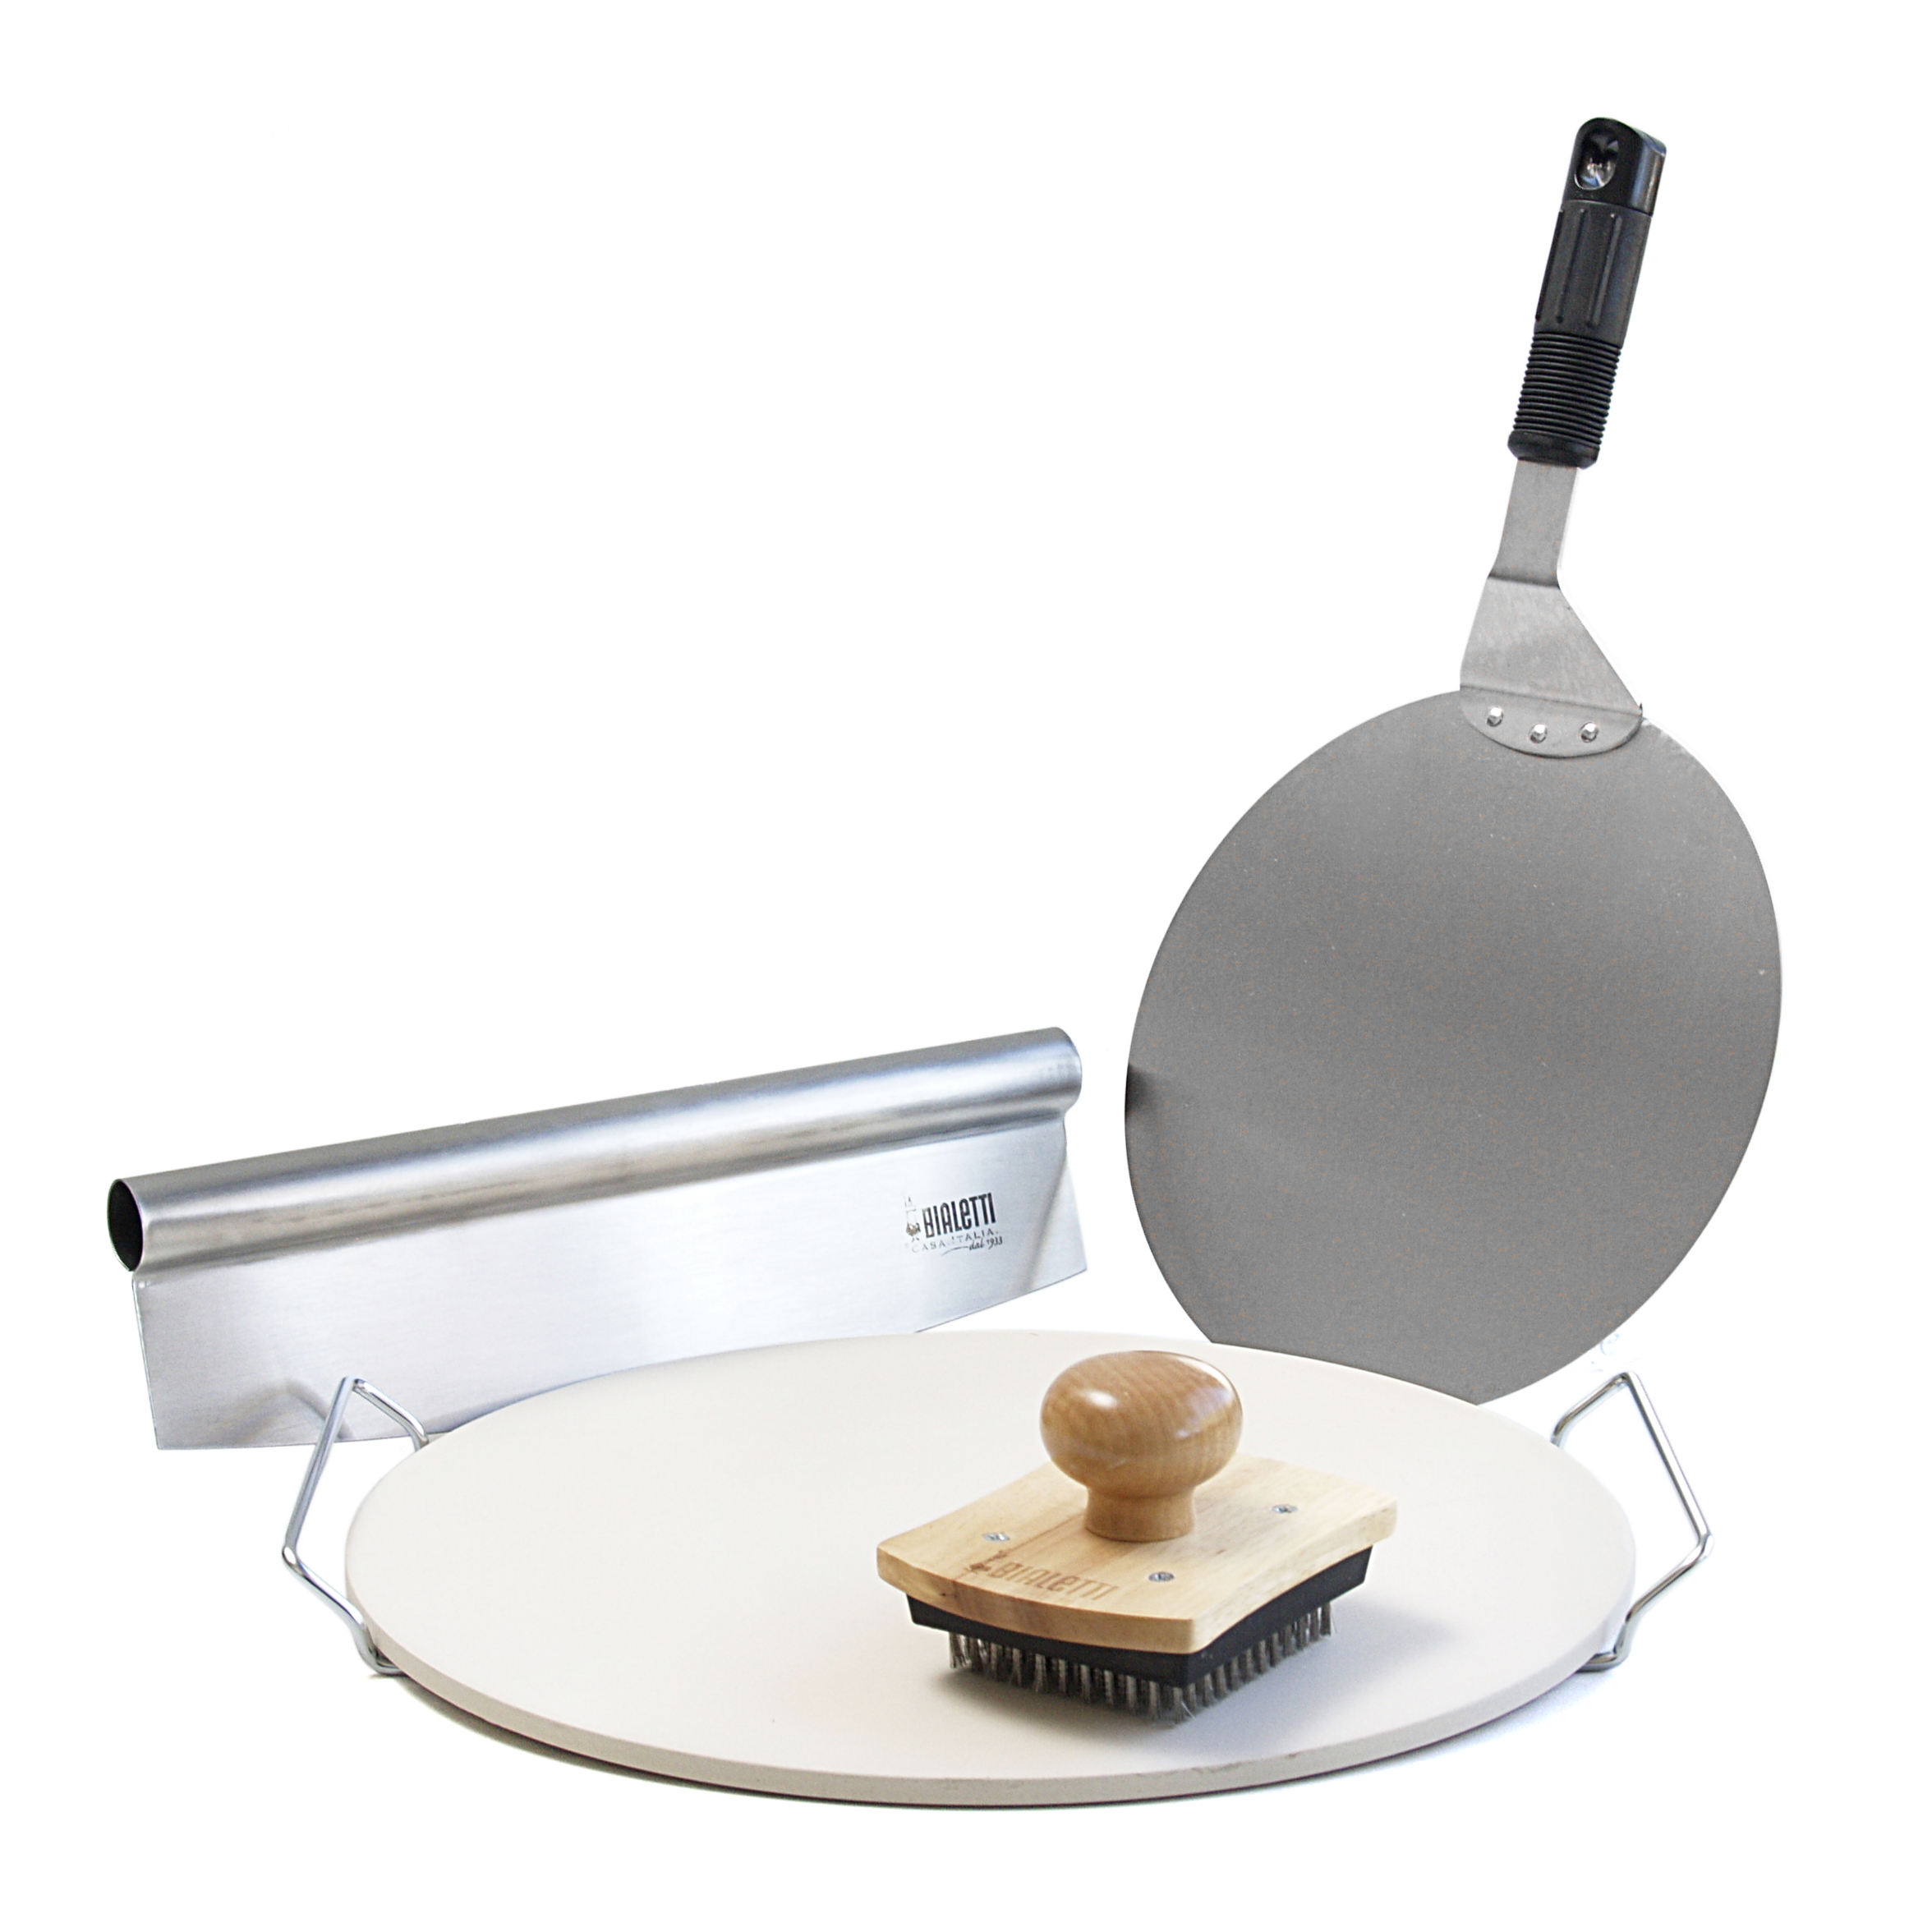 Bialetti At Home Pizza Kit with 14.75 Inch Round Pizza Stone